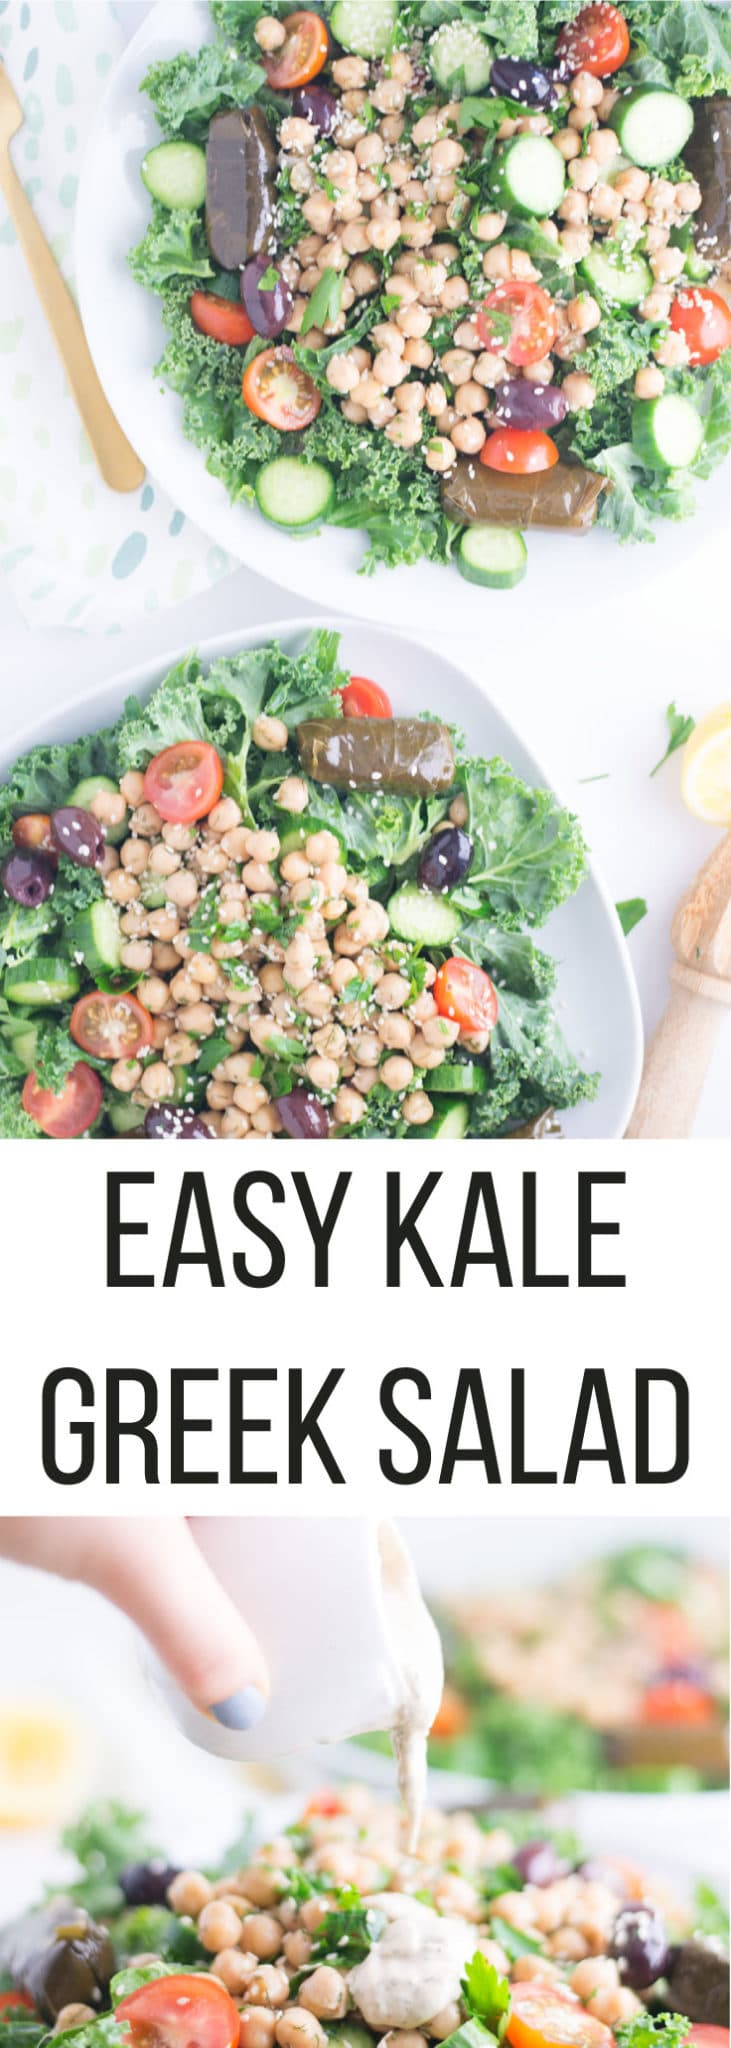 Kale Greek Salad with Tahini Dressing -- It only takes a few ingredients to make this salad come together for a delicious plant-based meal. Chickpeas, fresh herbs, and a delicious tahini dressing make this salad worth a try! #vegansalads #healthyrecipe #cleaneating #vegan- mindfulavocado